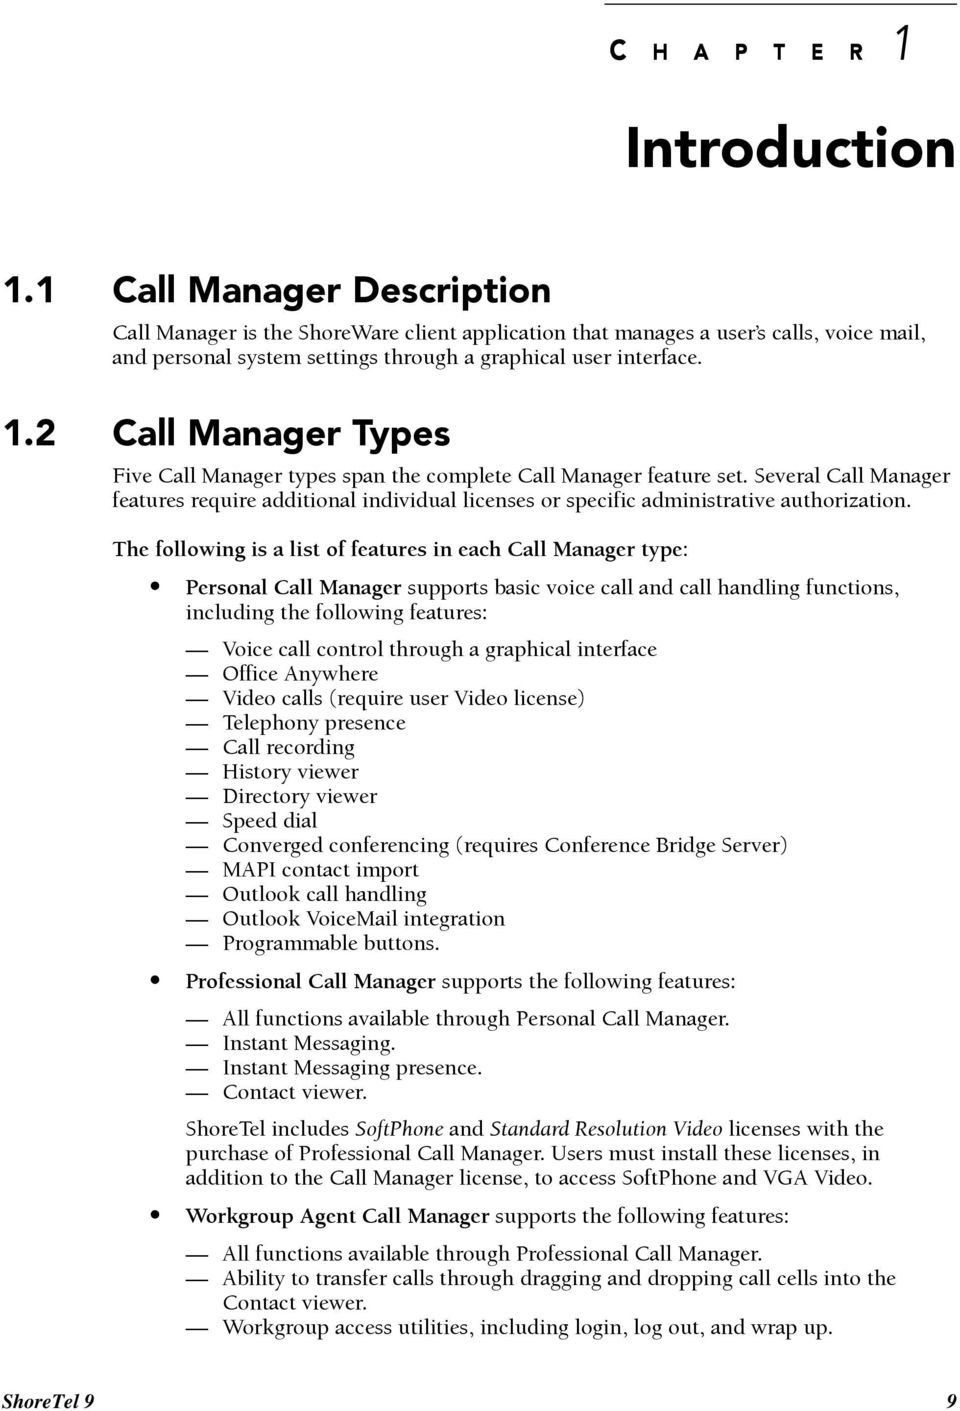 2 Call Manager Types Five Call Manager types span the complete Call Manager feature set. Several Call Manager features require additional individual licenses or specific administrative authorization.